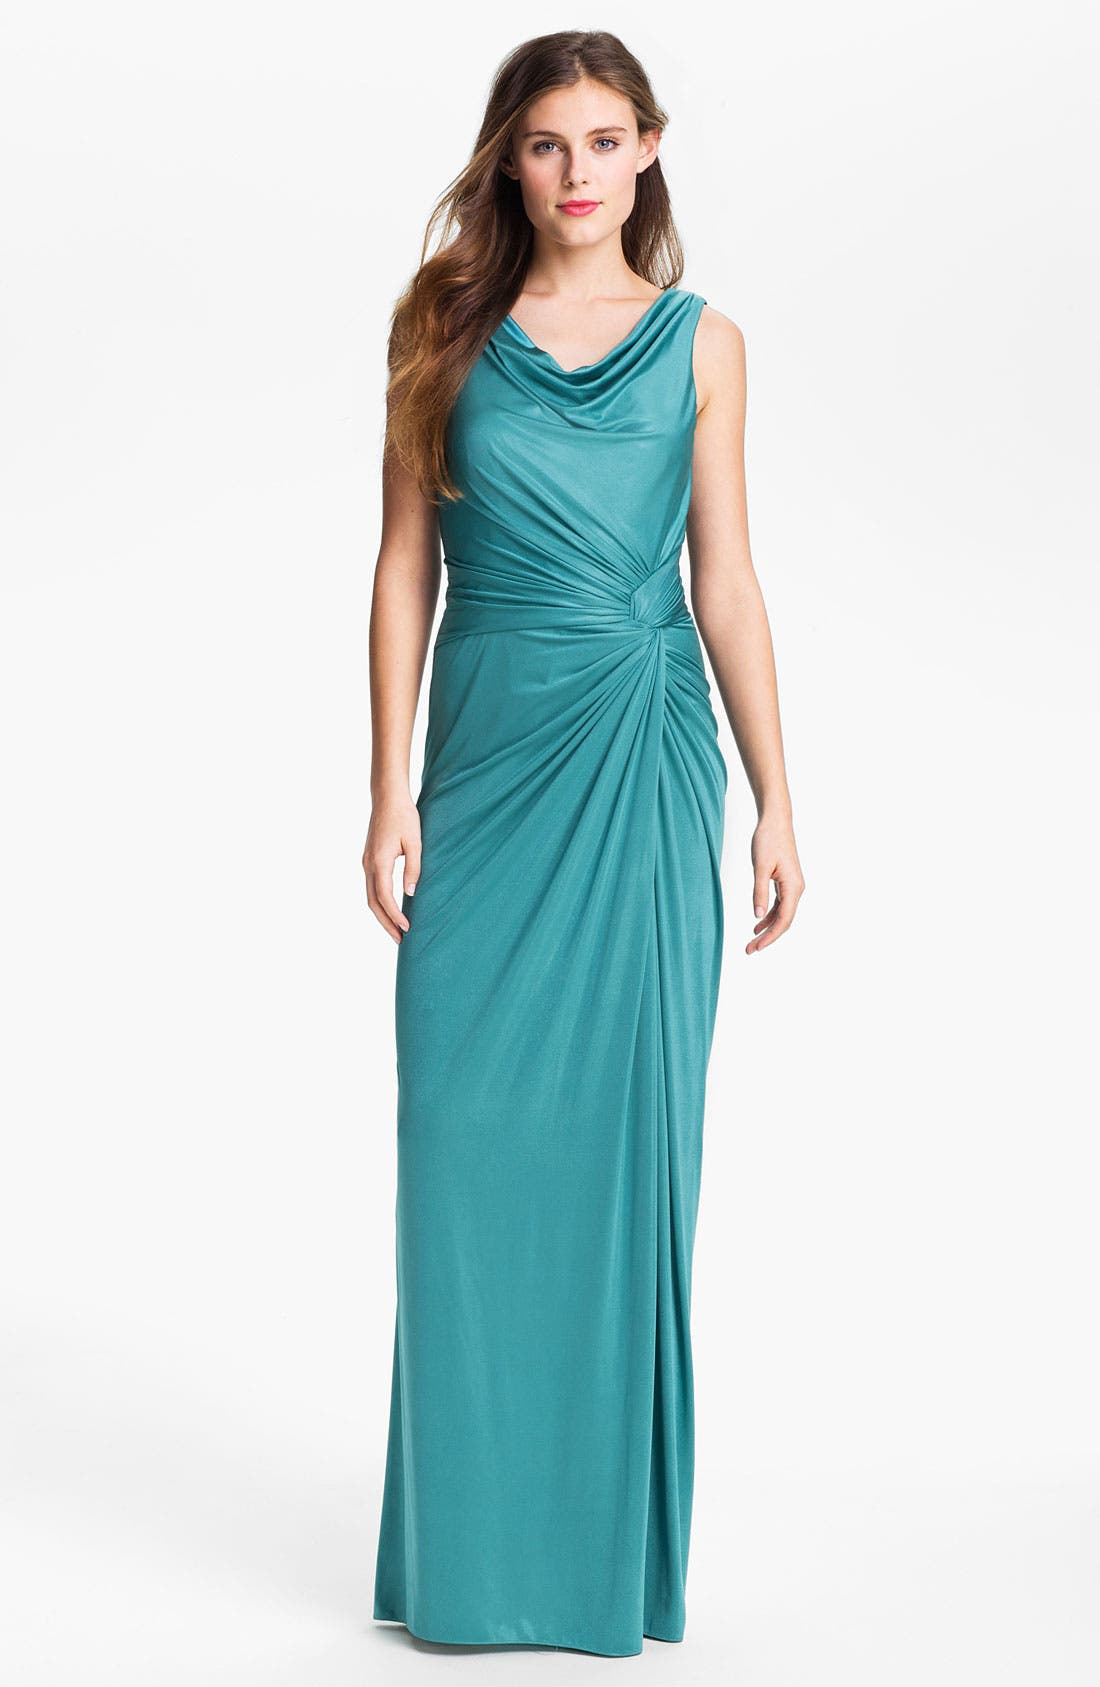 Main Image - Adrianna Papell Draped Front Twist Charmeuse Gown